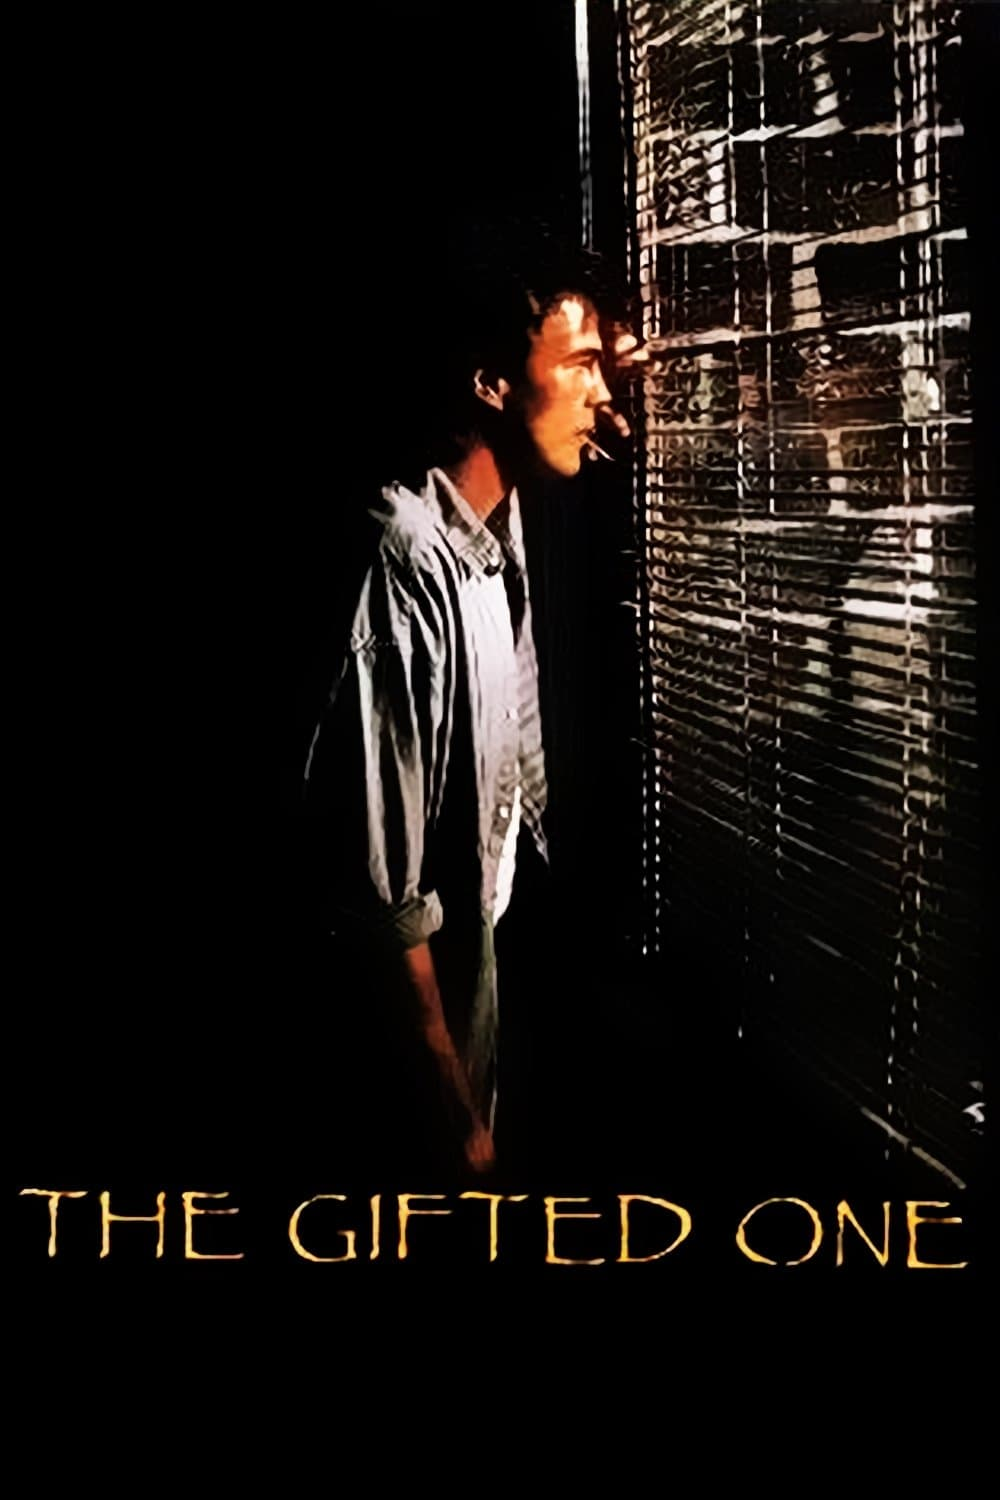 The Gifted One (1989)